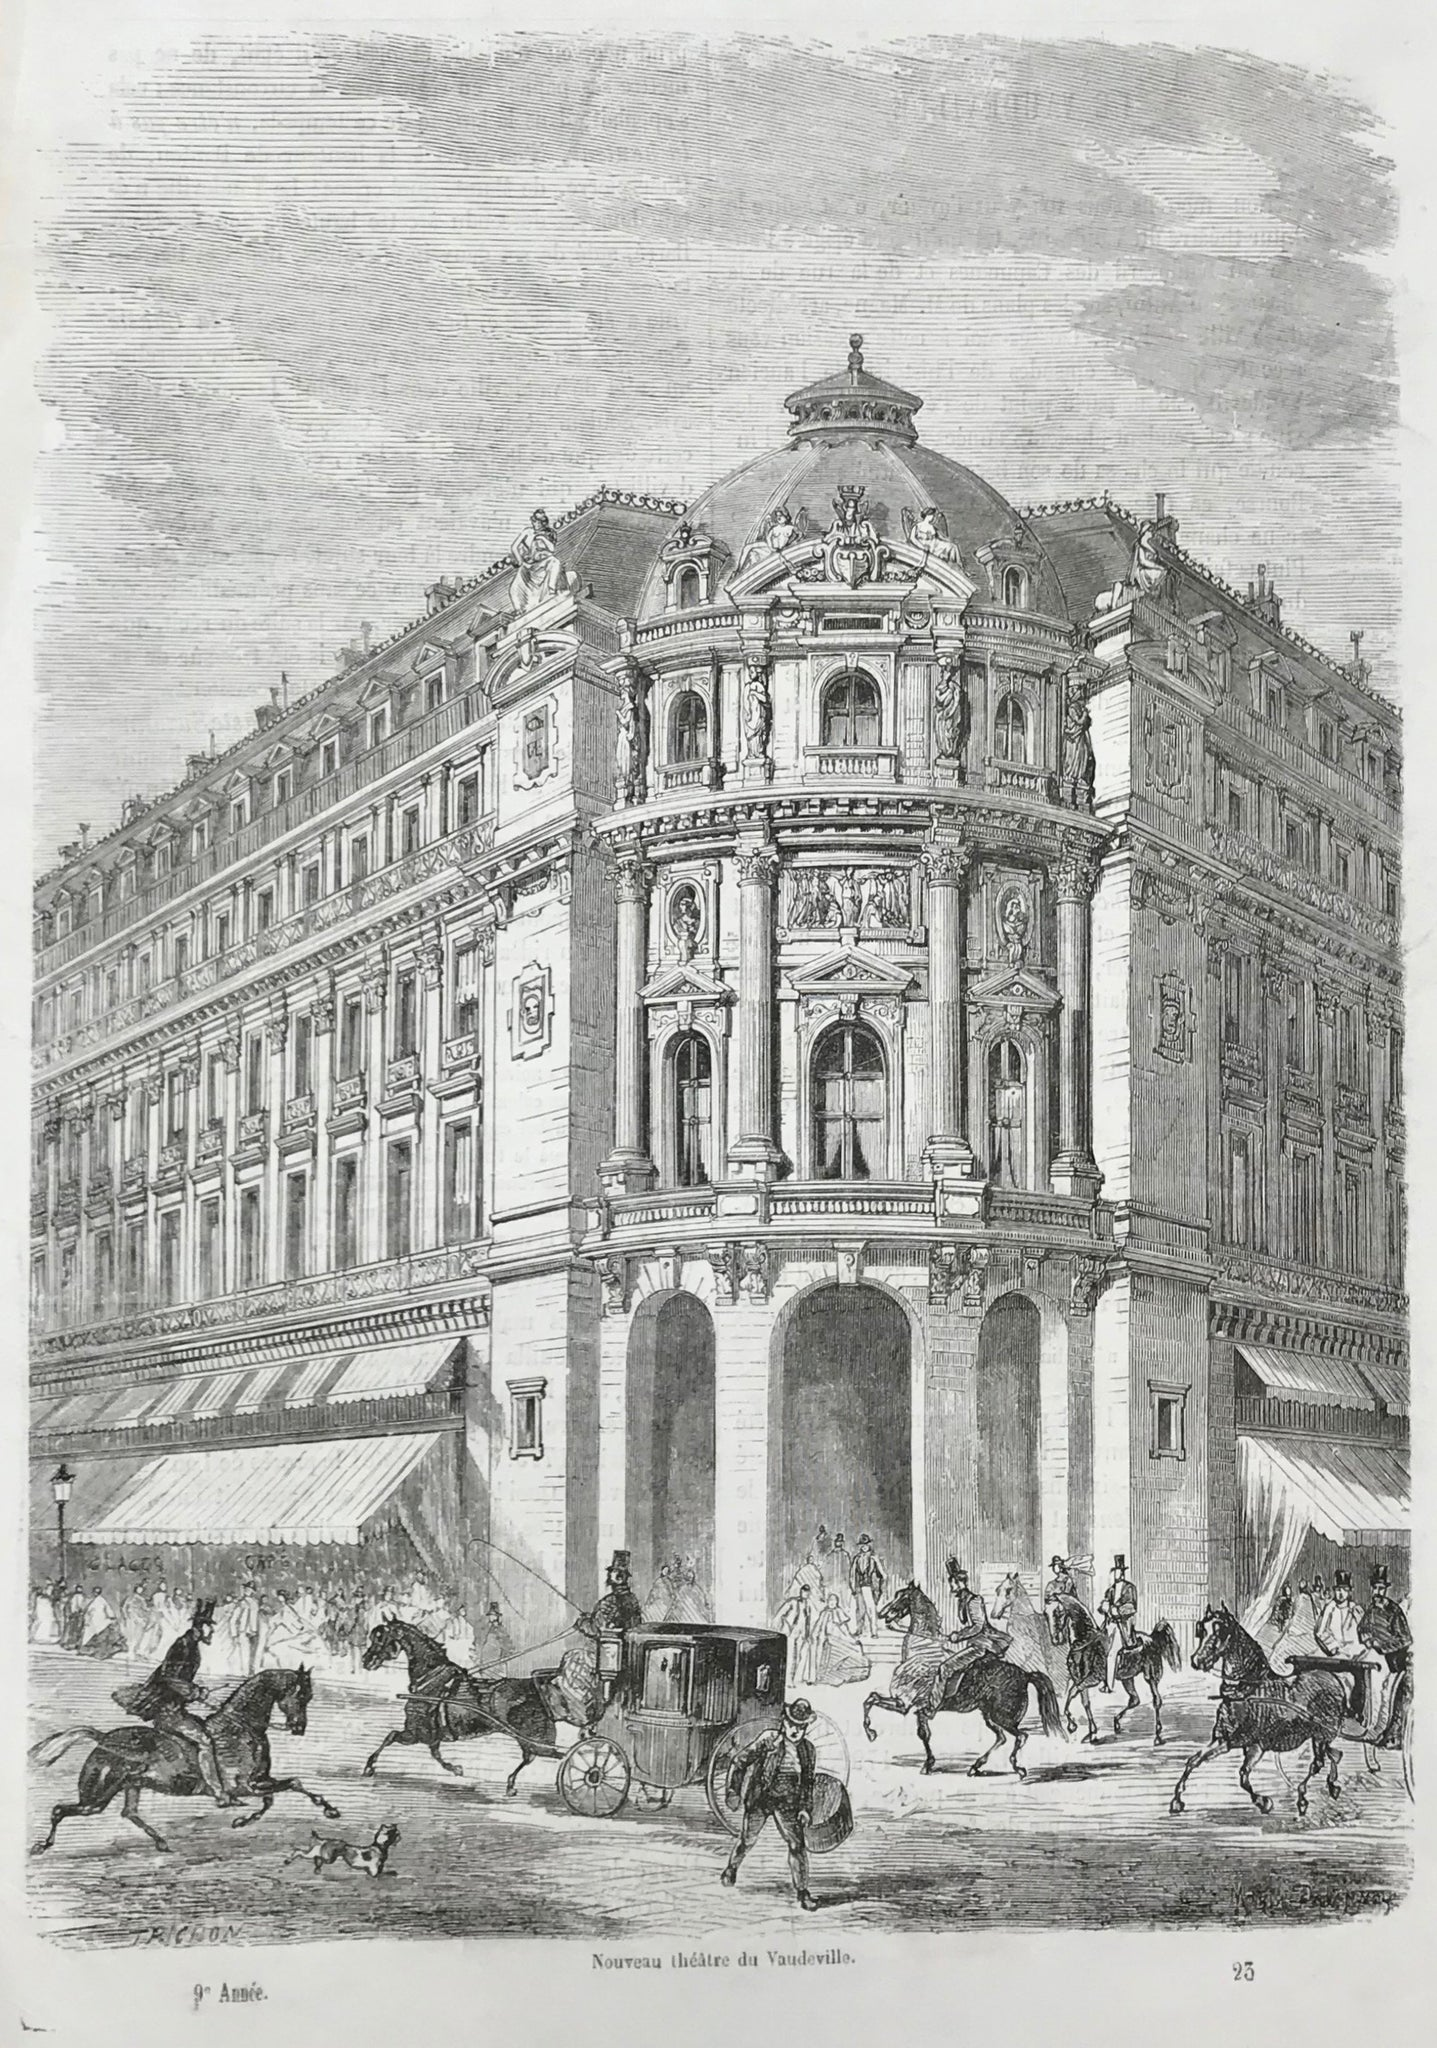 """Nouveau theatre du Vaudville""  Wood engraving published 1867. On the reverse side is text (in French) about the Vaudeville Theater."